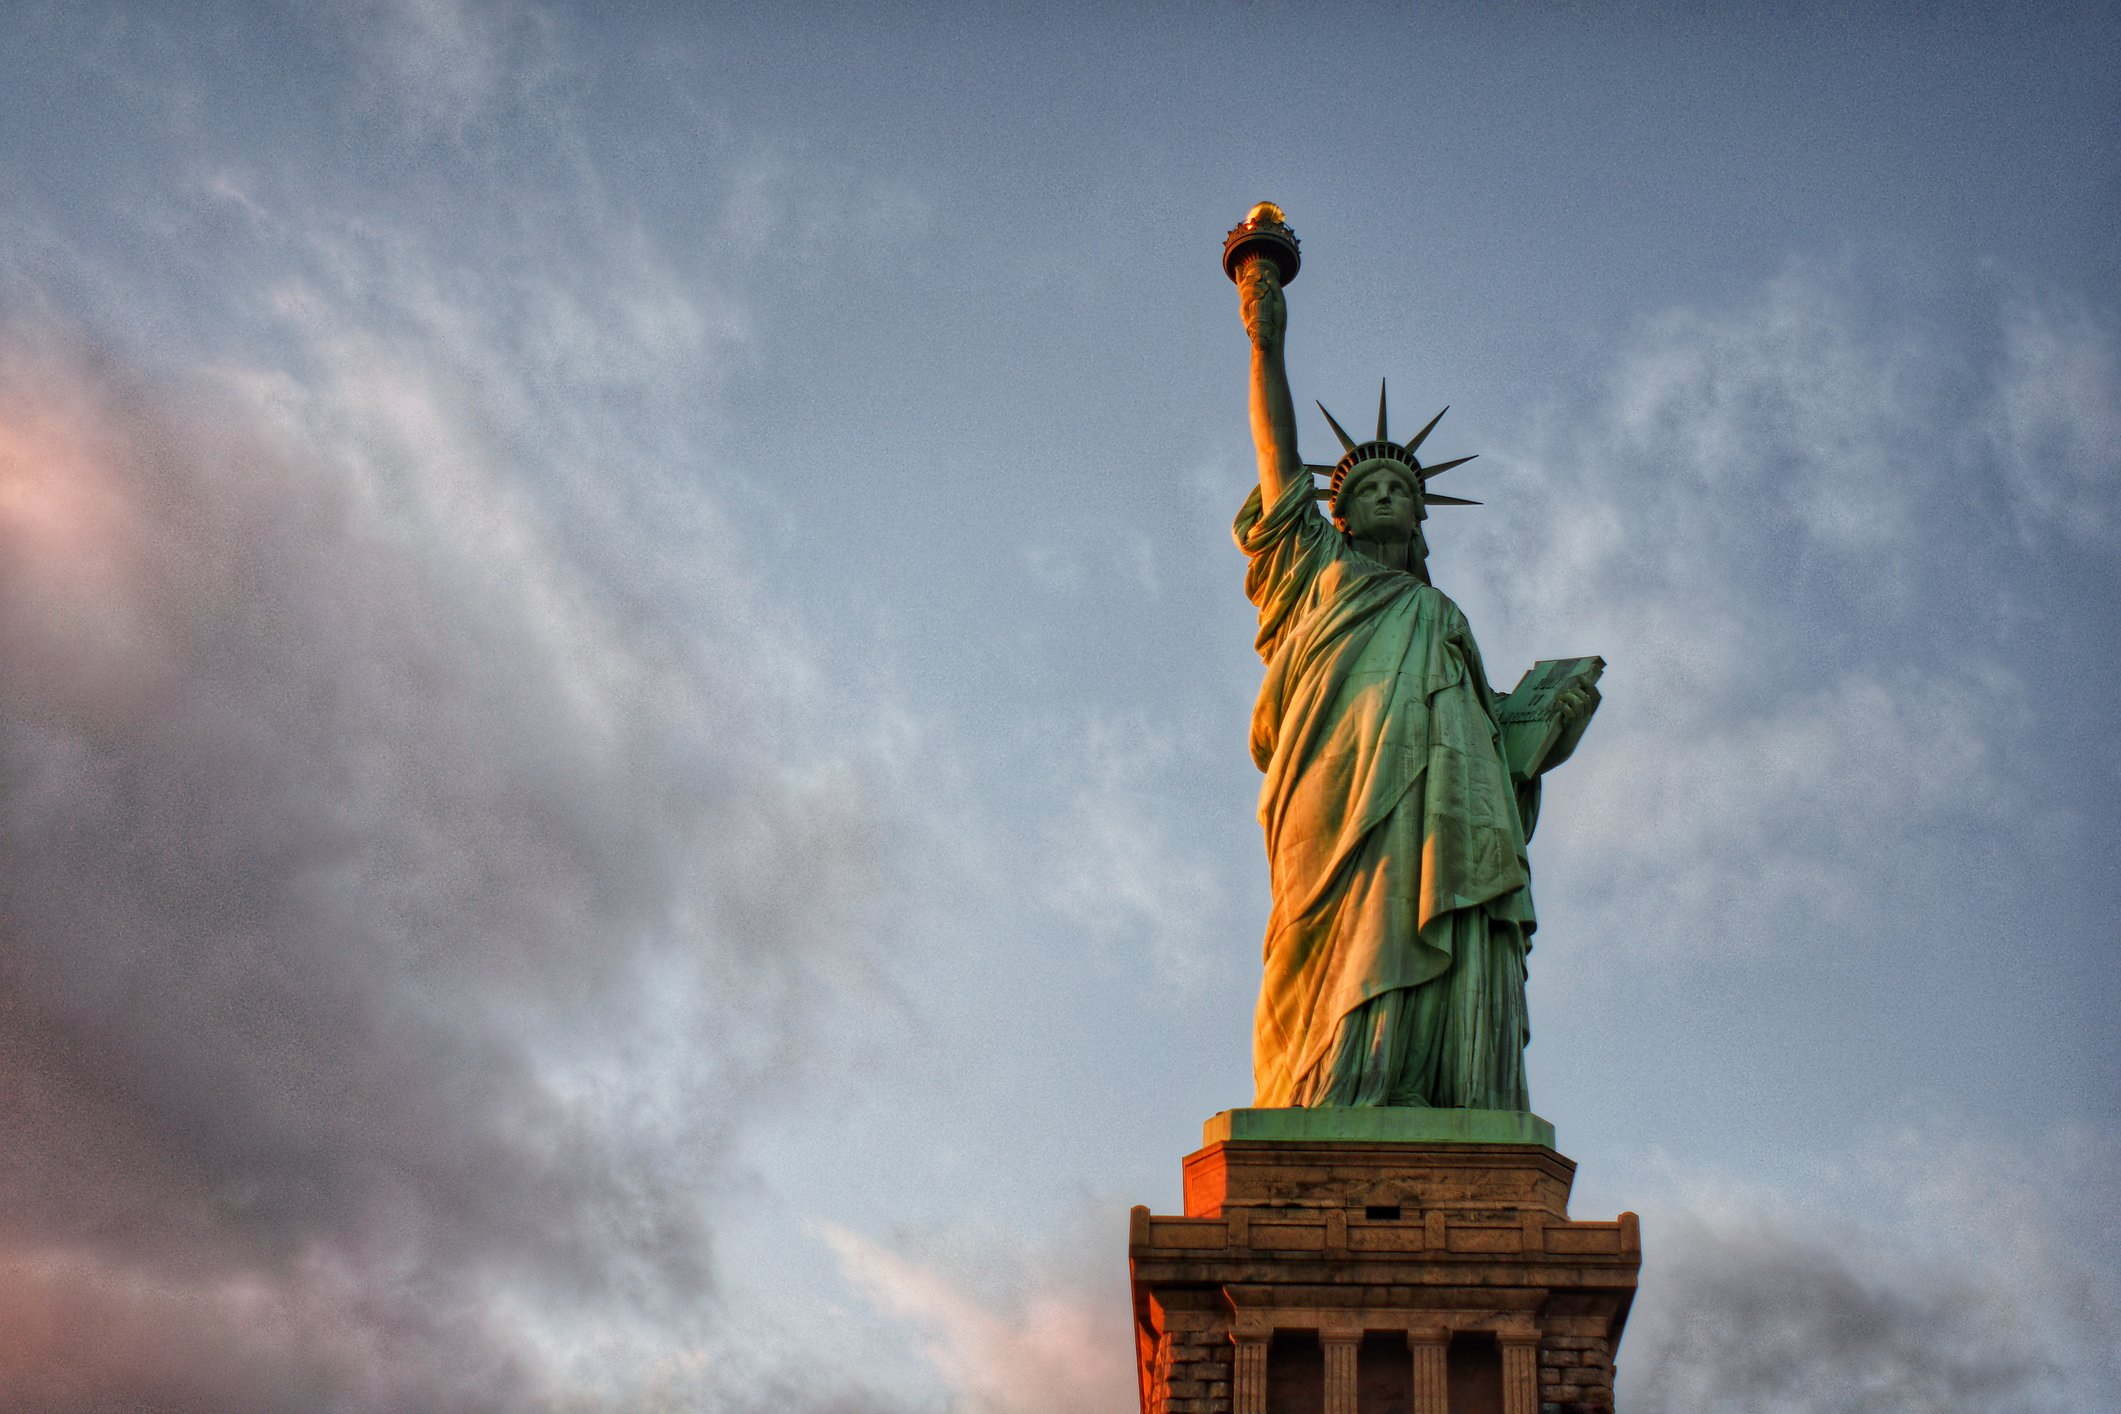 CATO – A Brief History of U.S. Immigration Policy from the Colonial Period to the Present Day